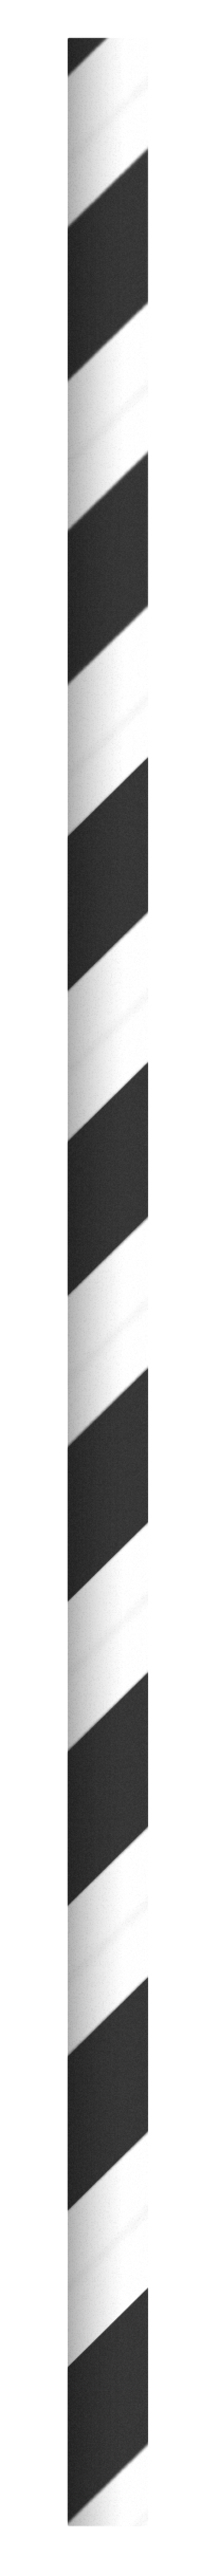 Durable Black & White Striped Paper Straws - Individually Wrapped - 7.75  Inches